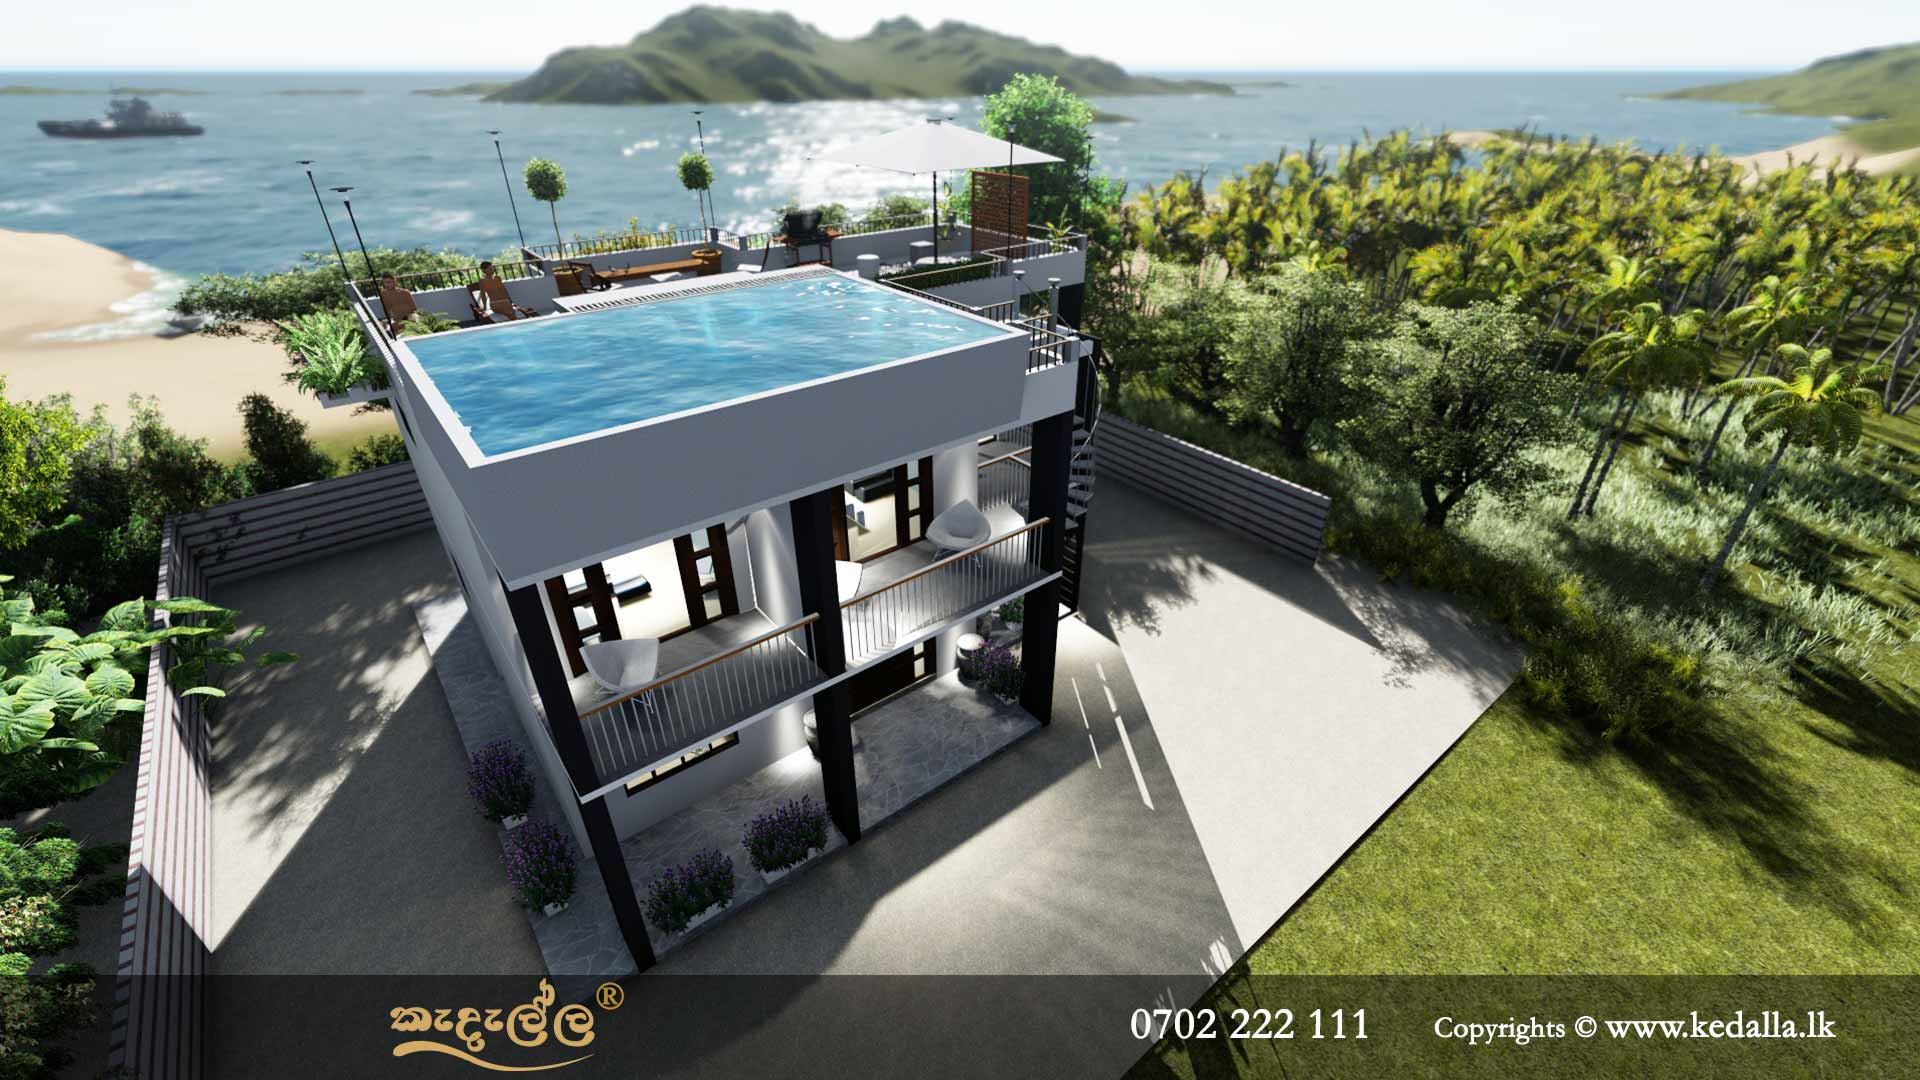 Two Story House Plans with annex and swimming pool on terrace/pool terrace in Sri Lanka